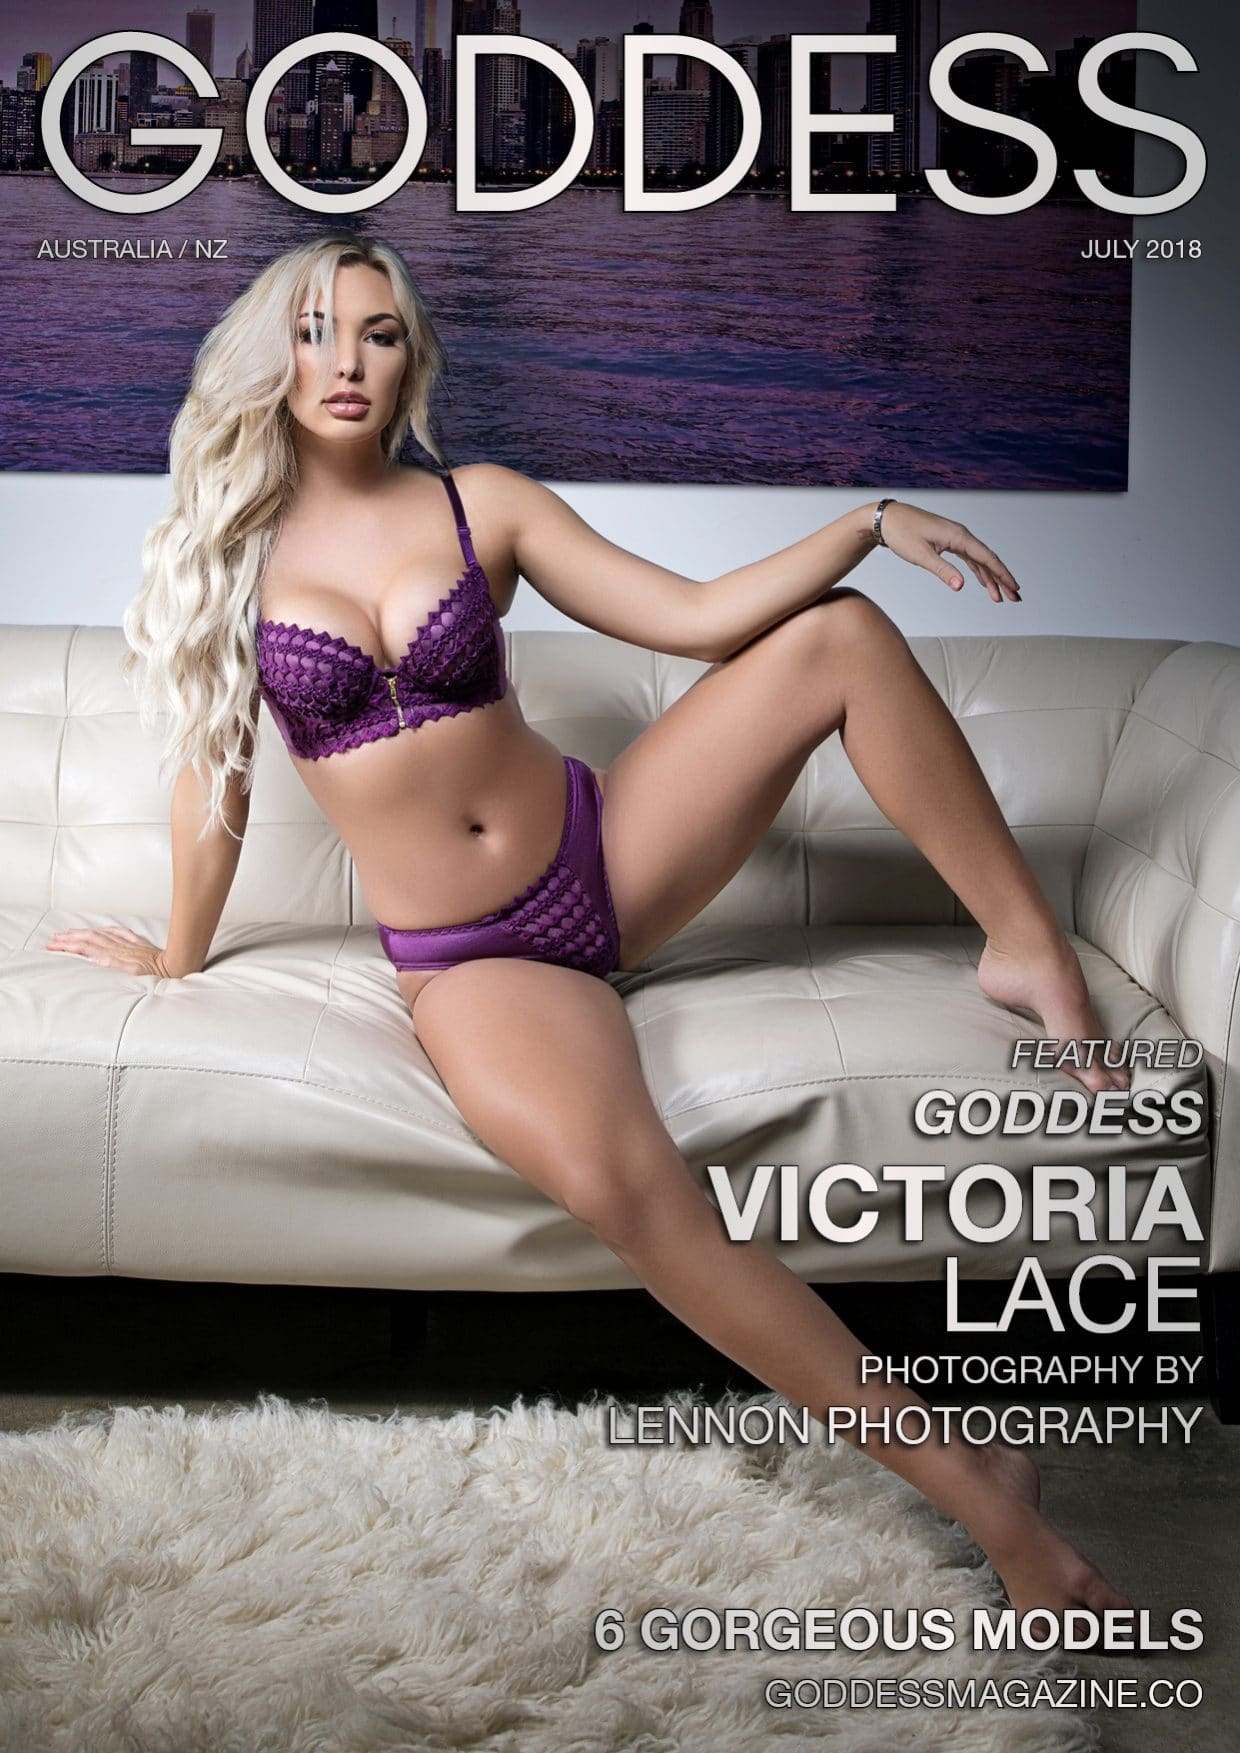 Goddess Magazine – July 2018 – Victoria Lace 1